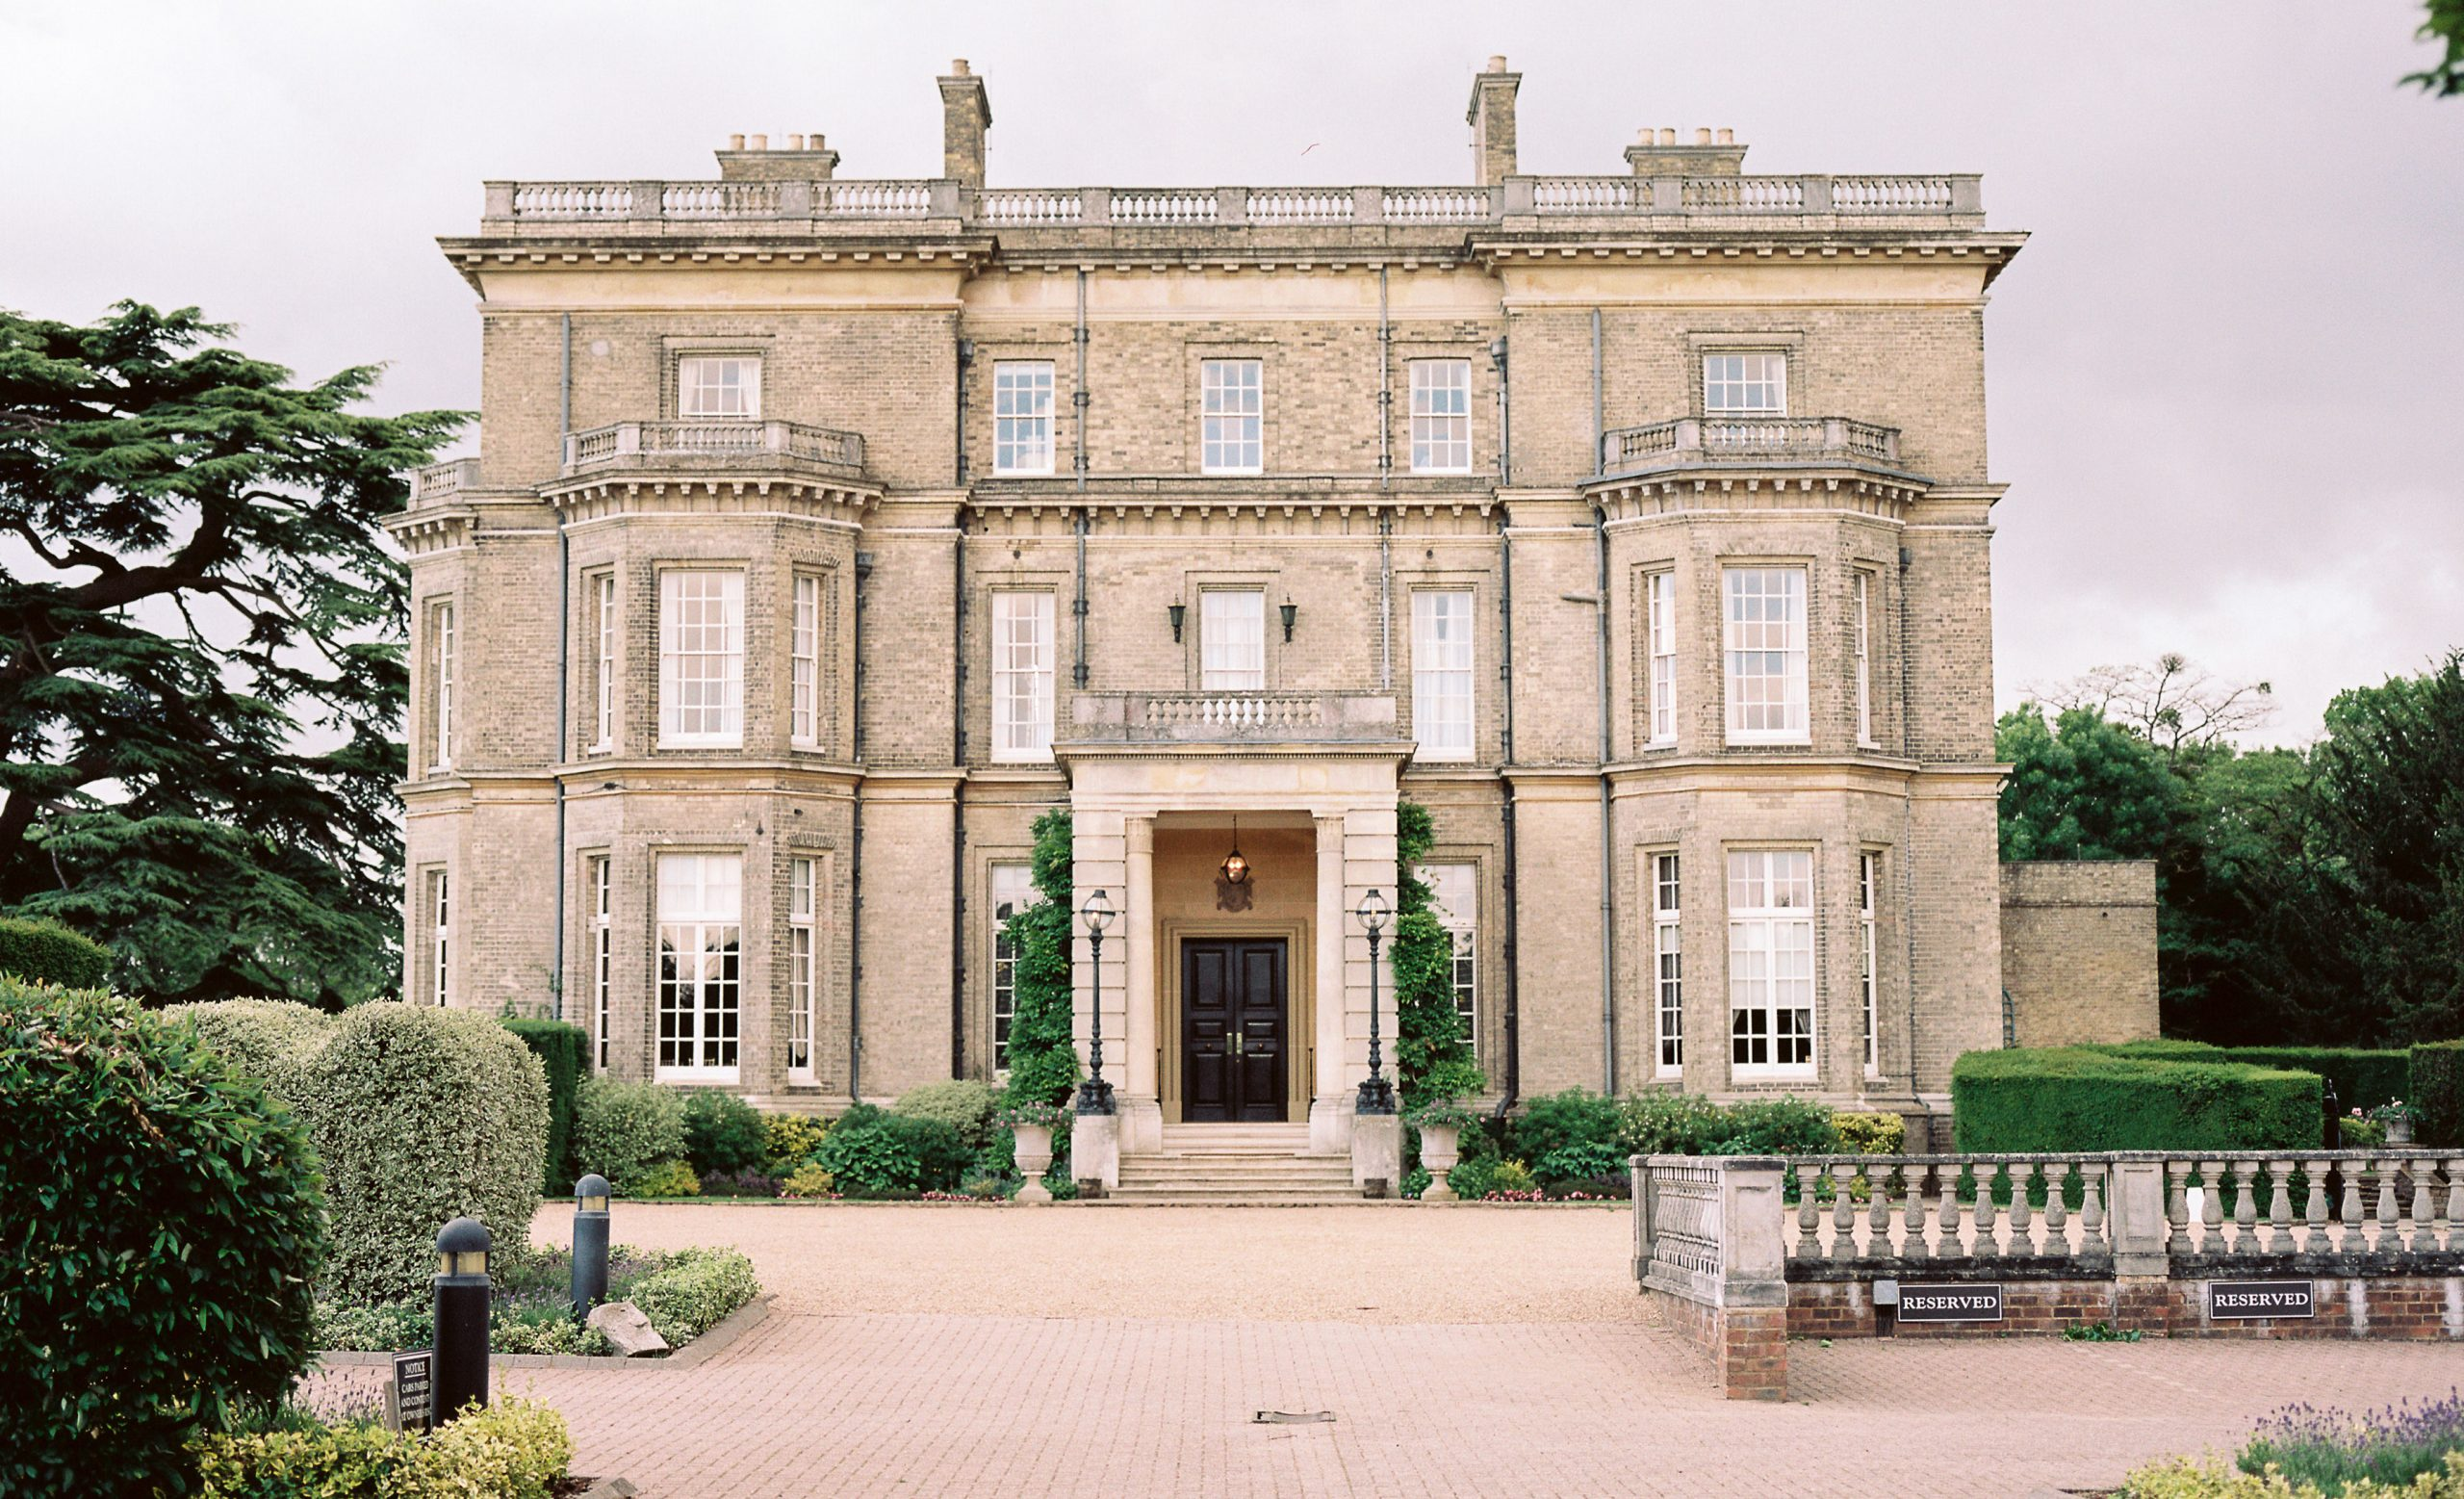 hedsor-house-DJ-Wedding-Disco-Photo-booth-dance-floor-sparks-dry-ice-confetti-love-letter-hire